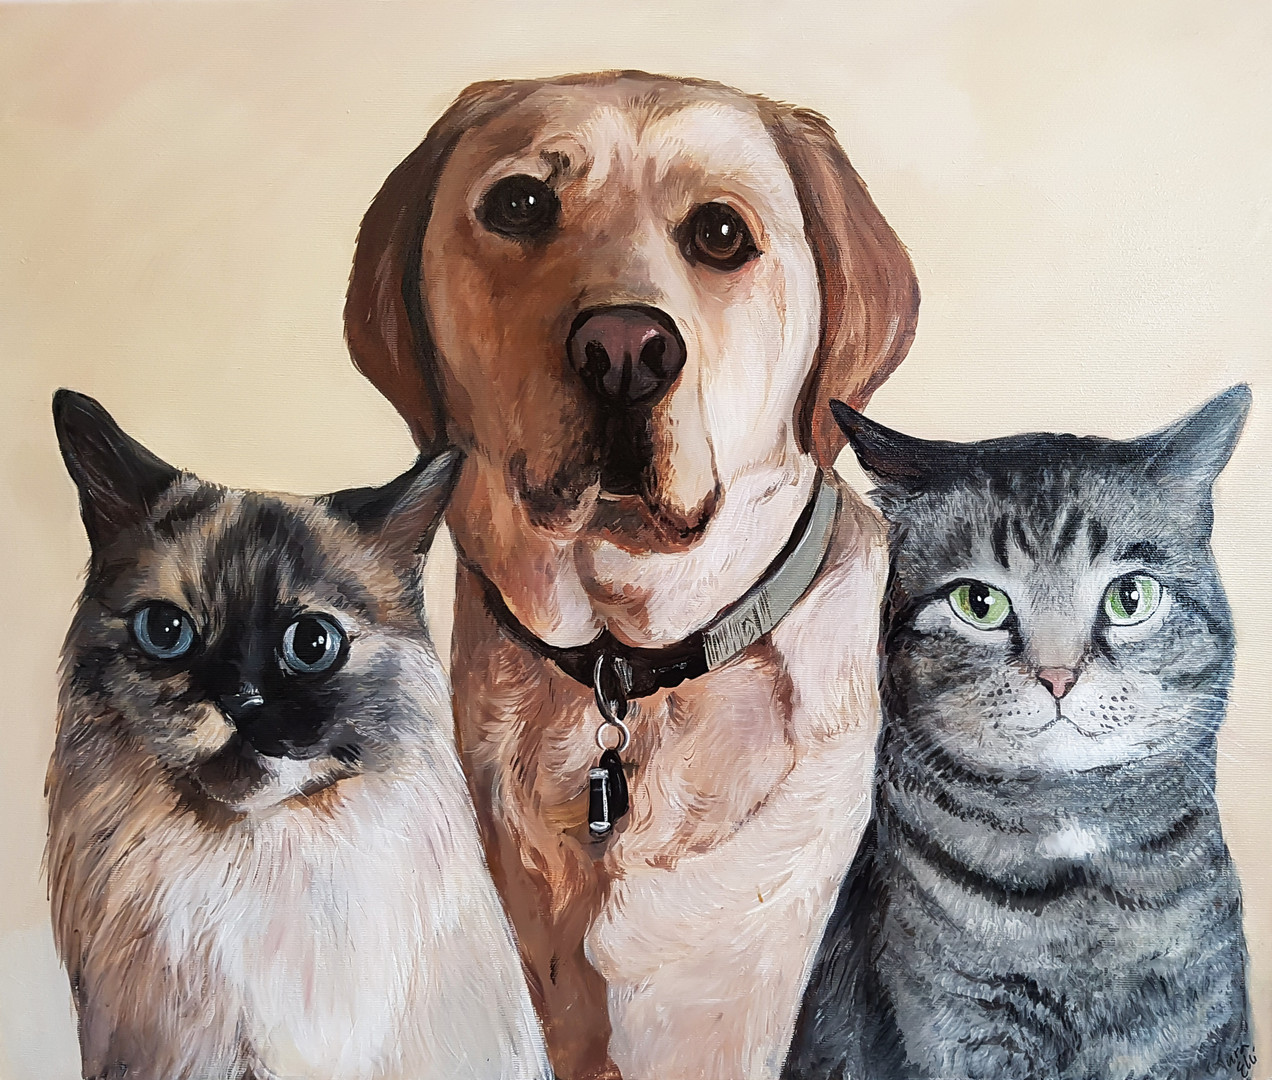 2 cats and a dog